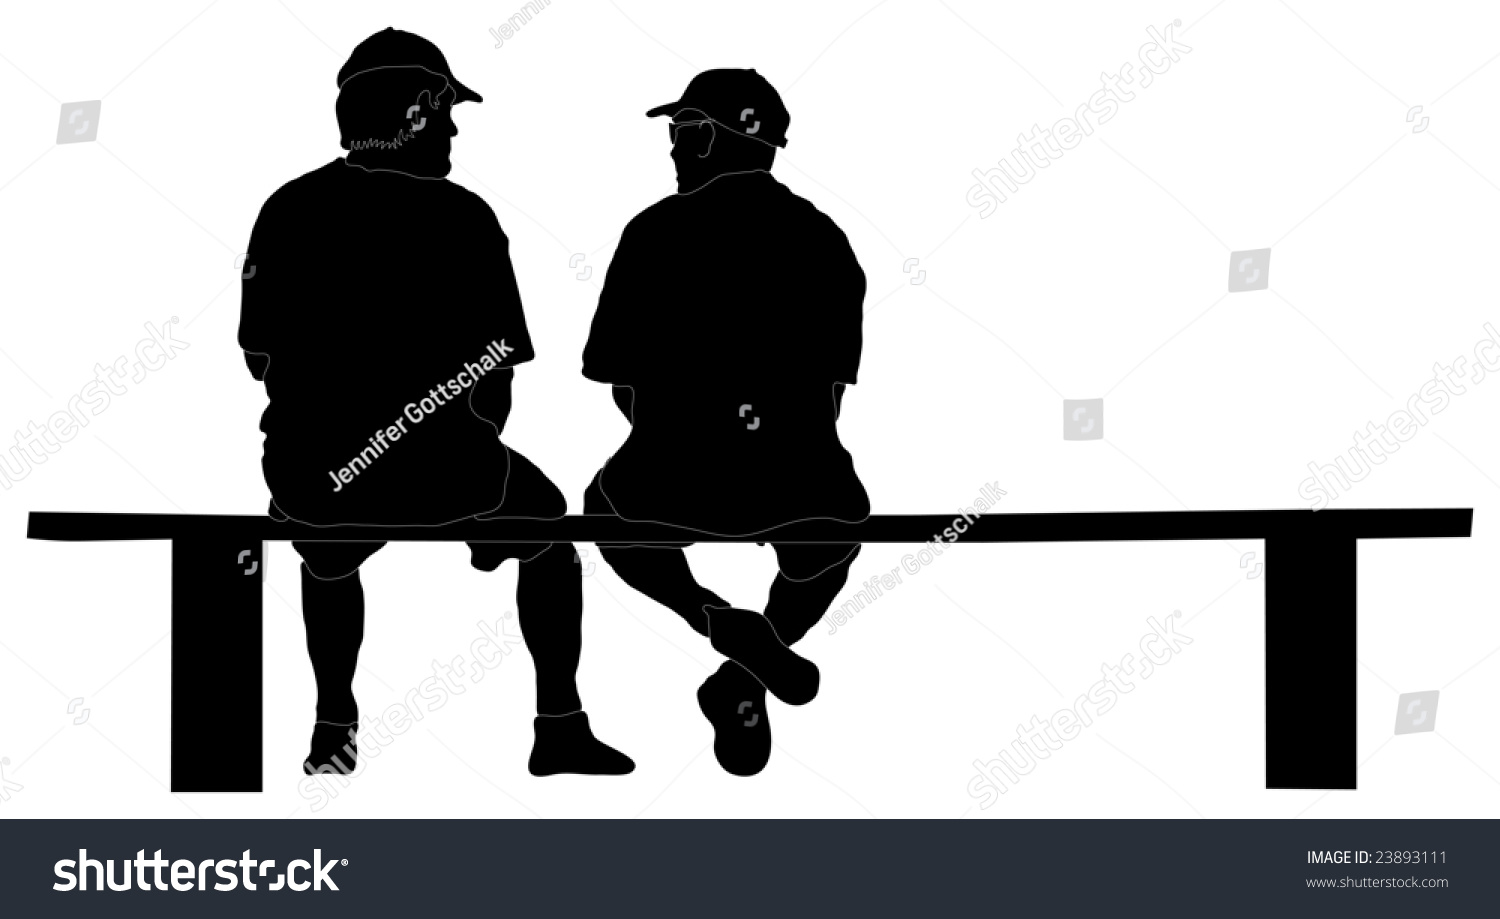 Silhouette Two Guys Sitting On Bench Stock Illustration 23893111 ... for People On Bench Silhouette  287fsj